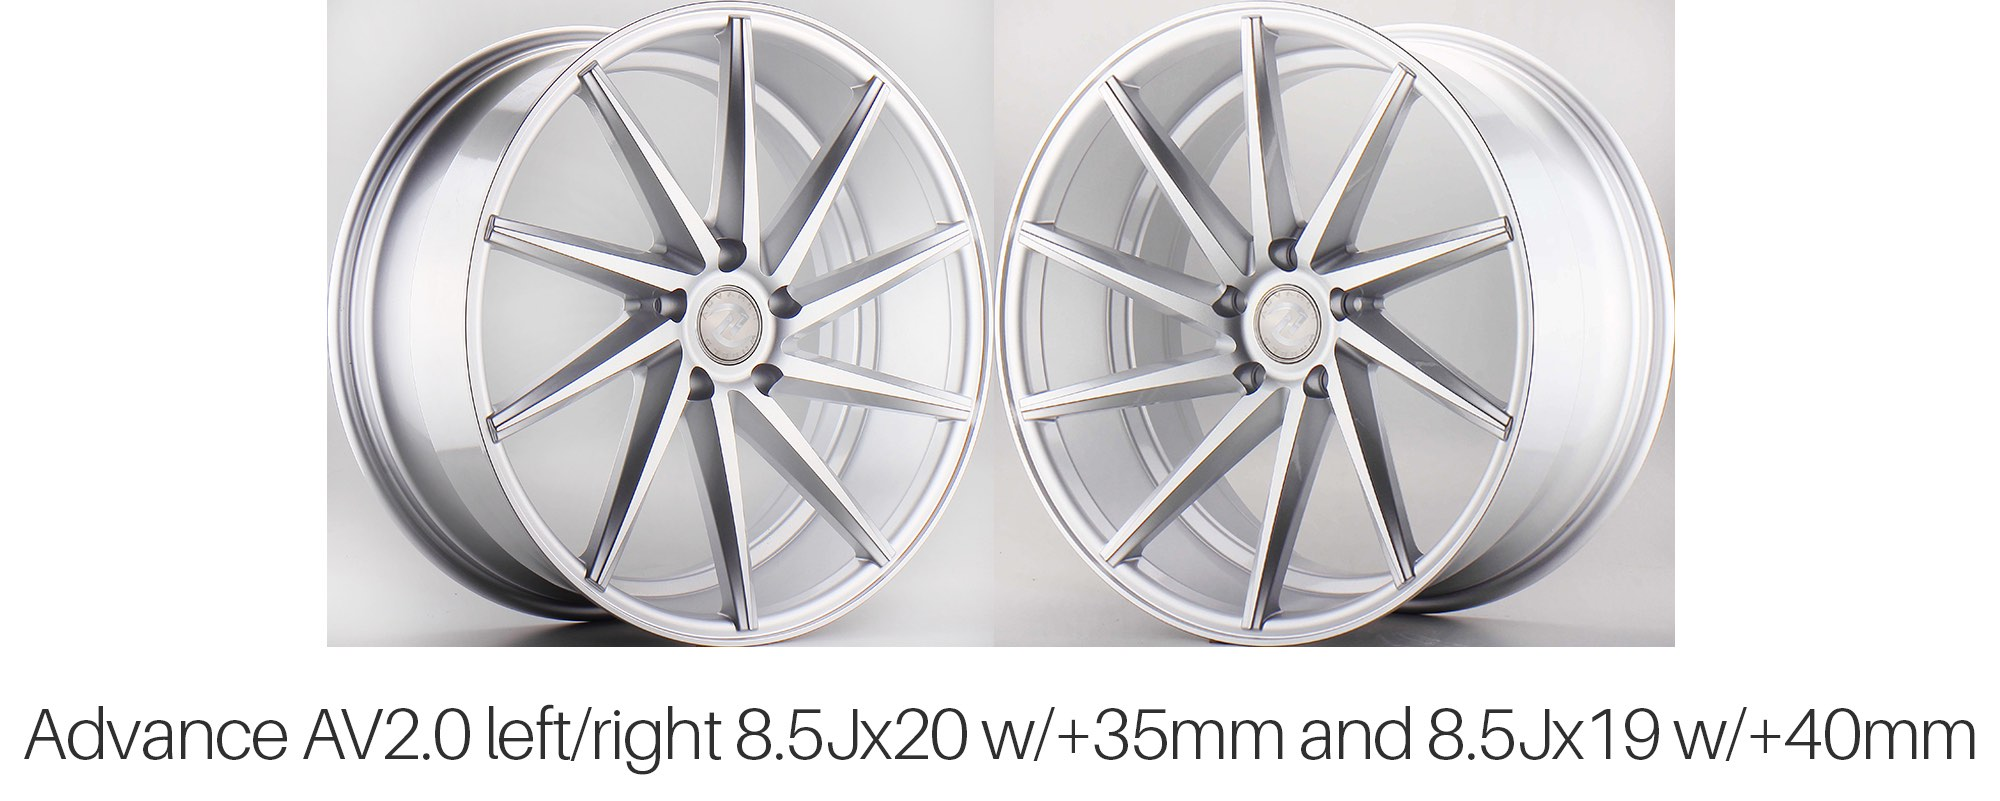 Advance AV2.0 Directional Wheels for Tesla Model S